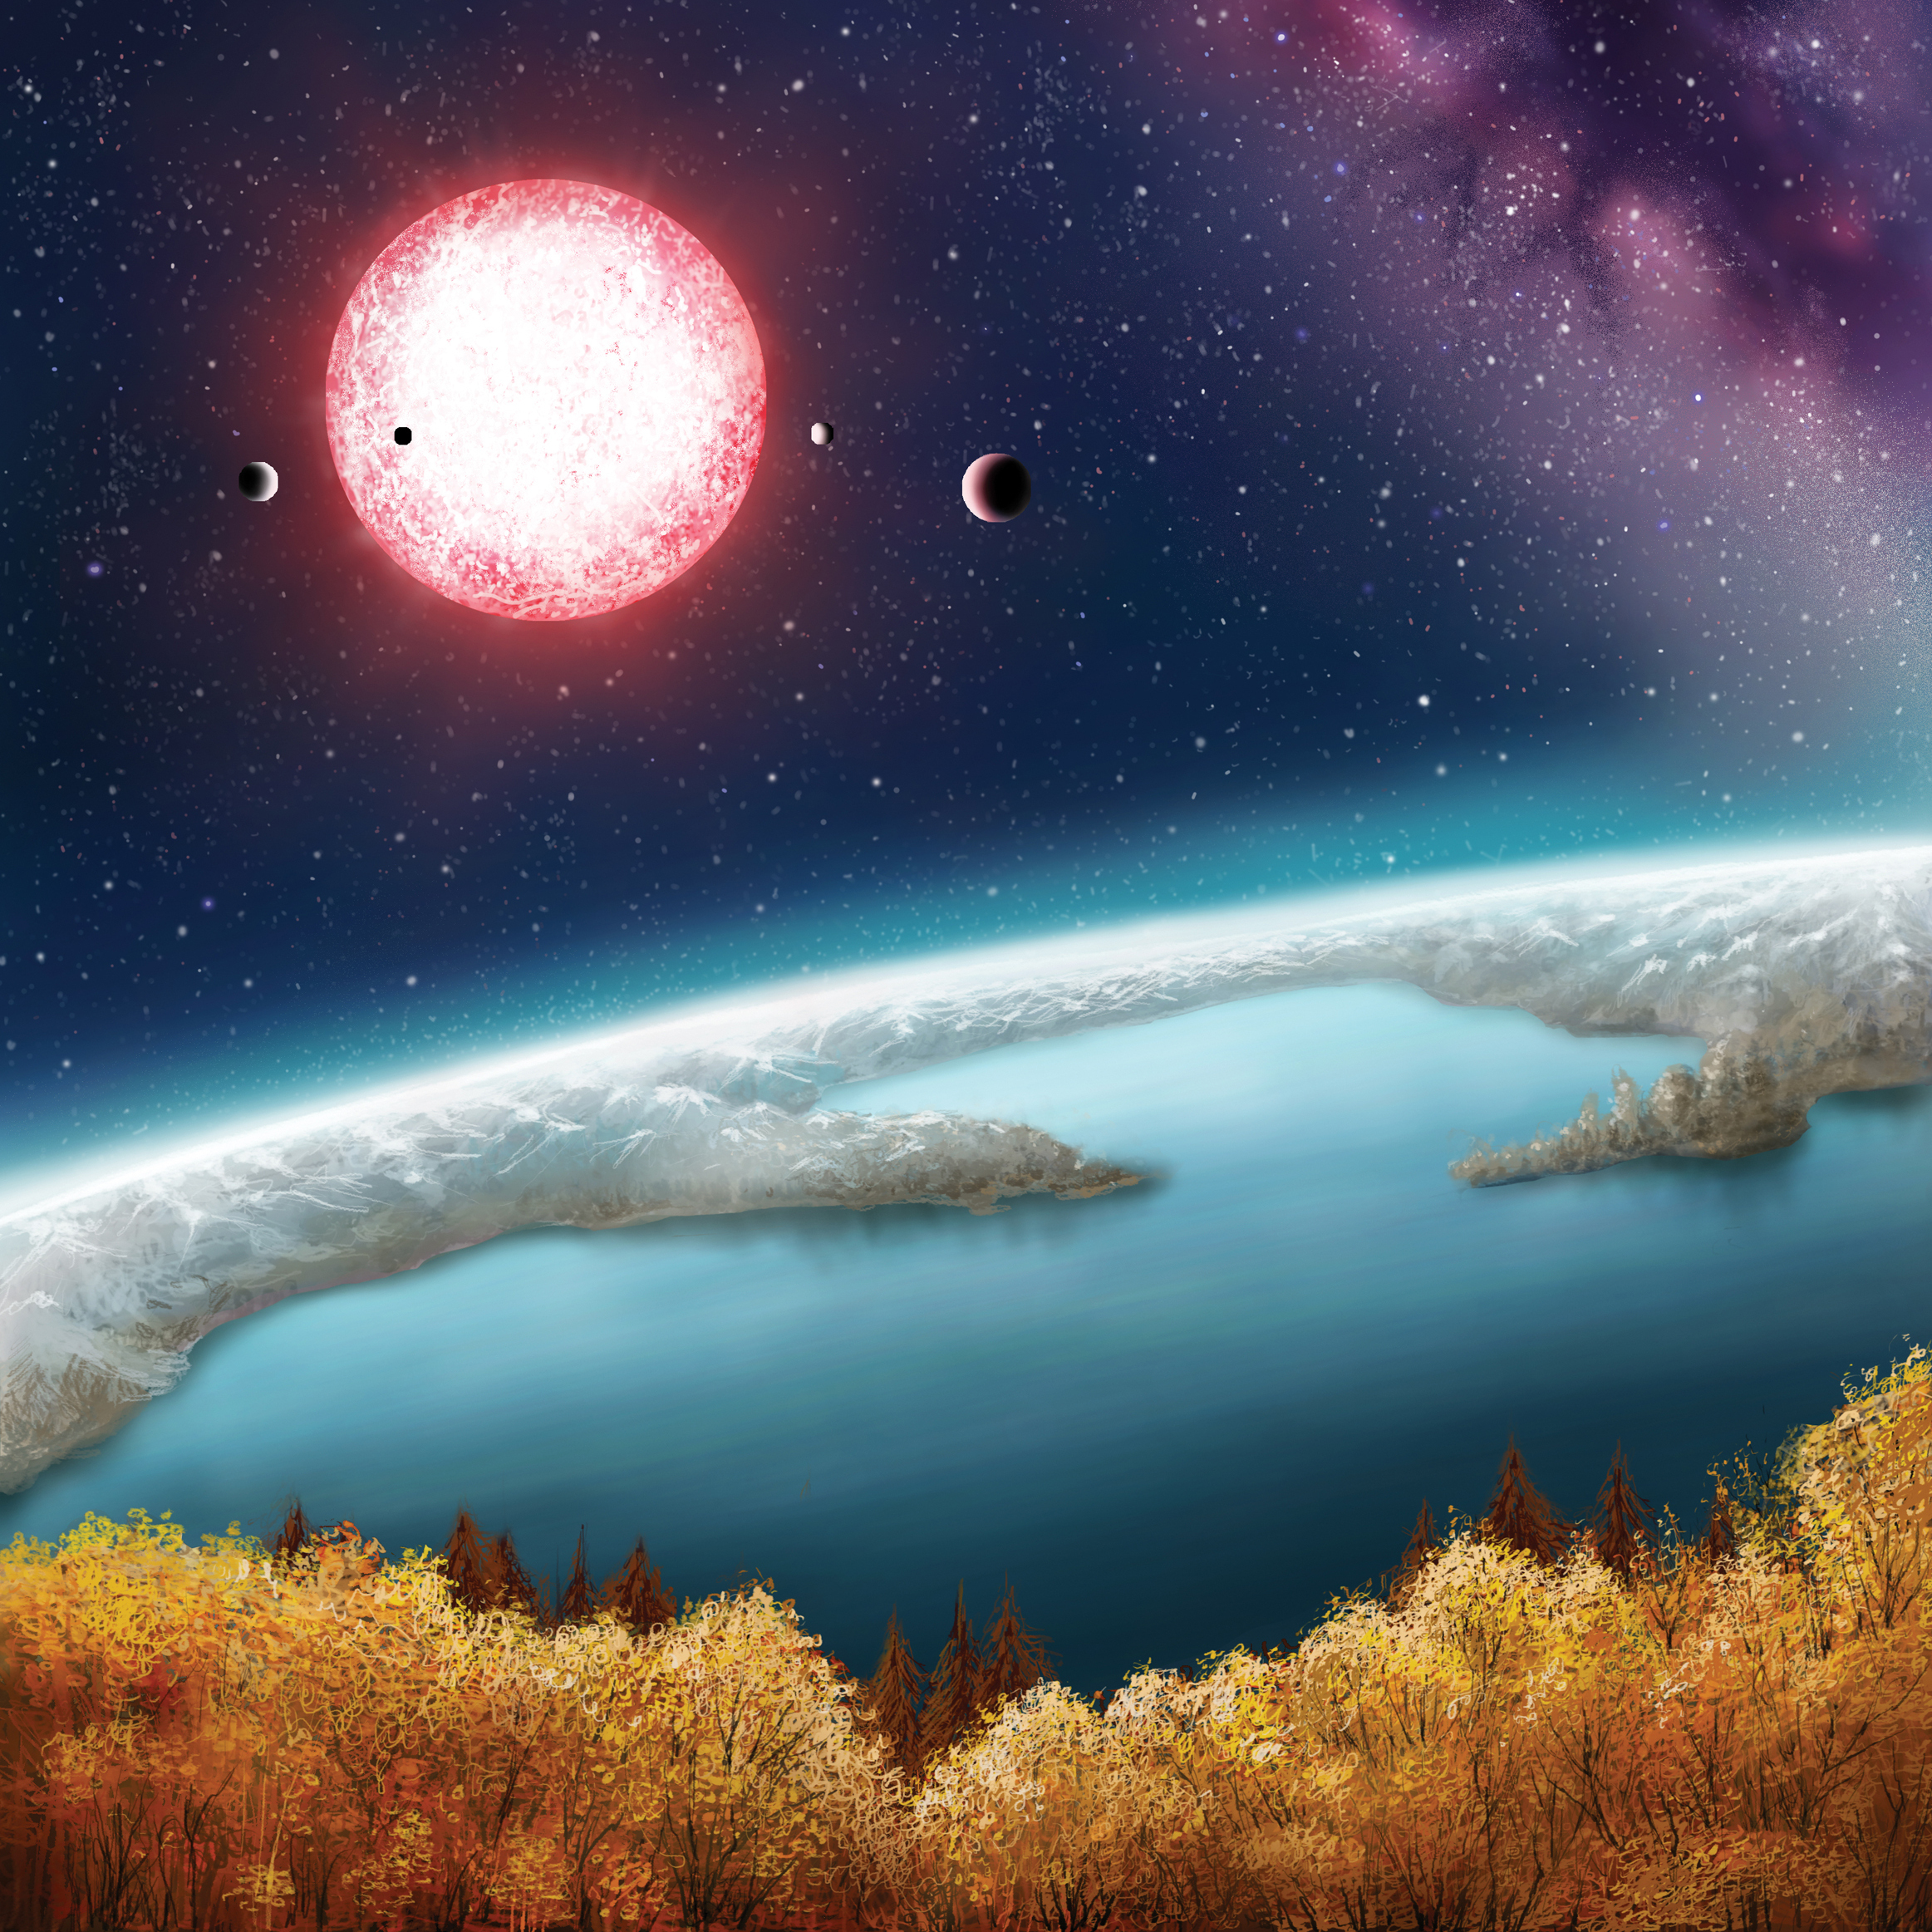 The discovery of Kepler-186f confirms that Earth-size planets exist in the habitable zone of other stars.